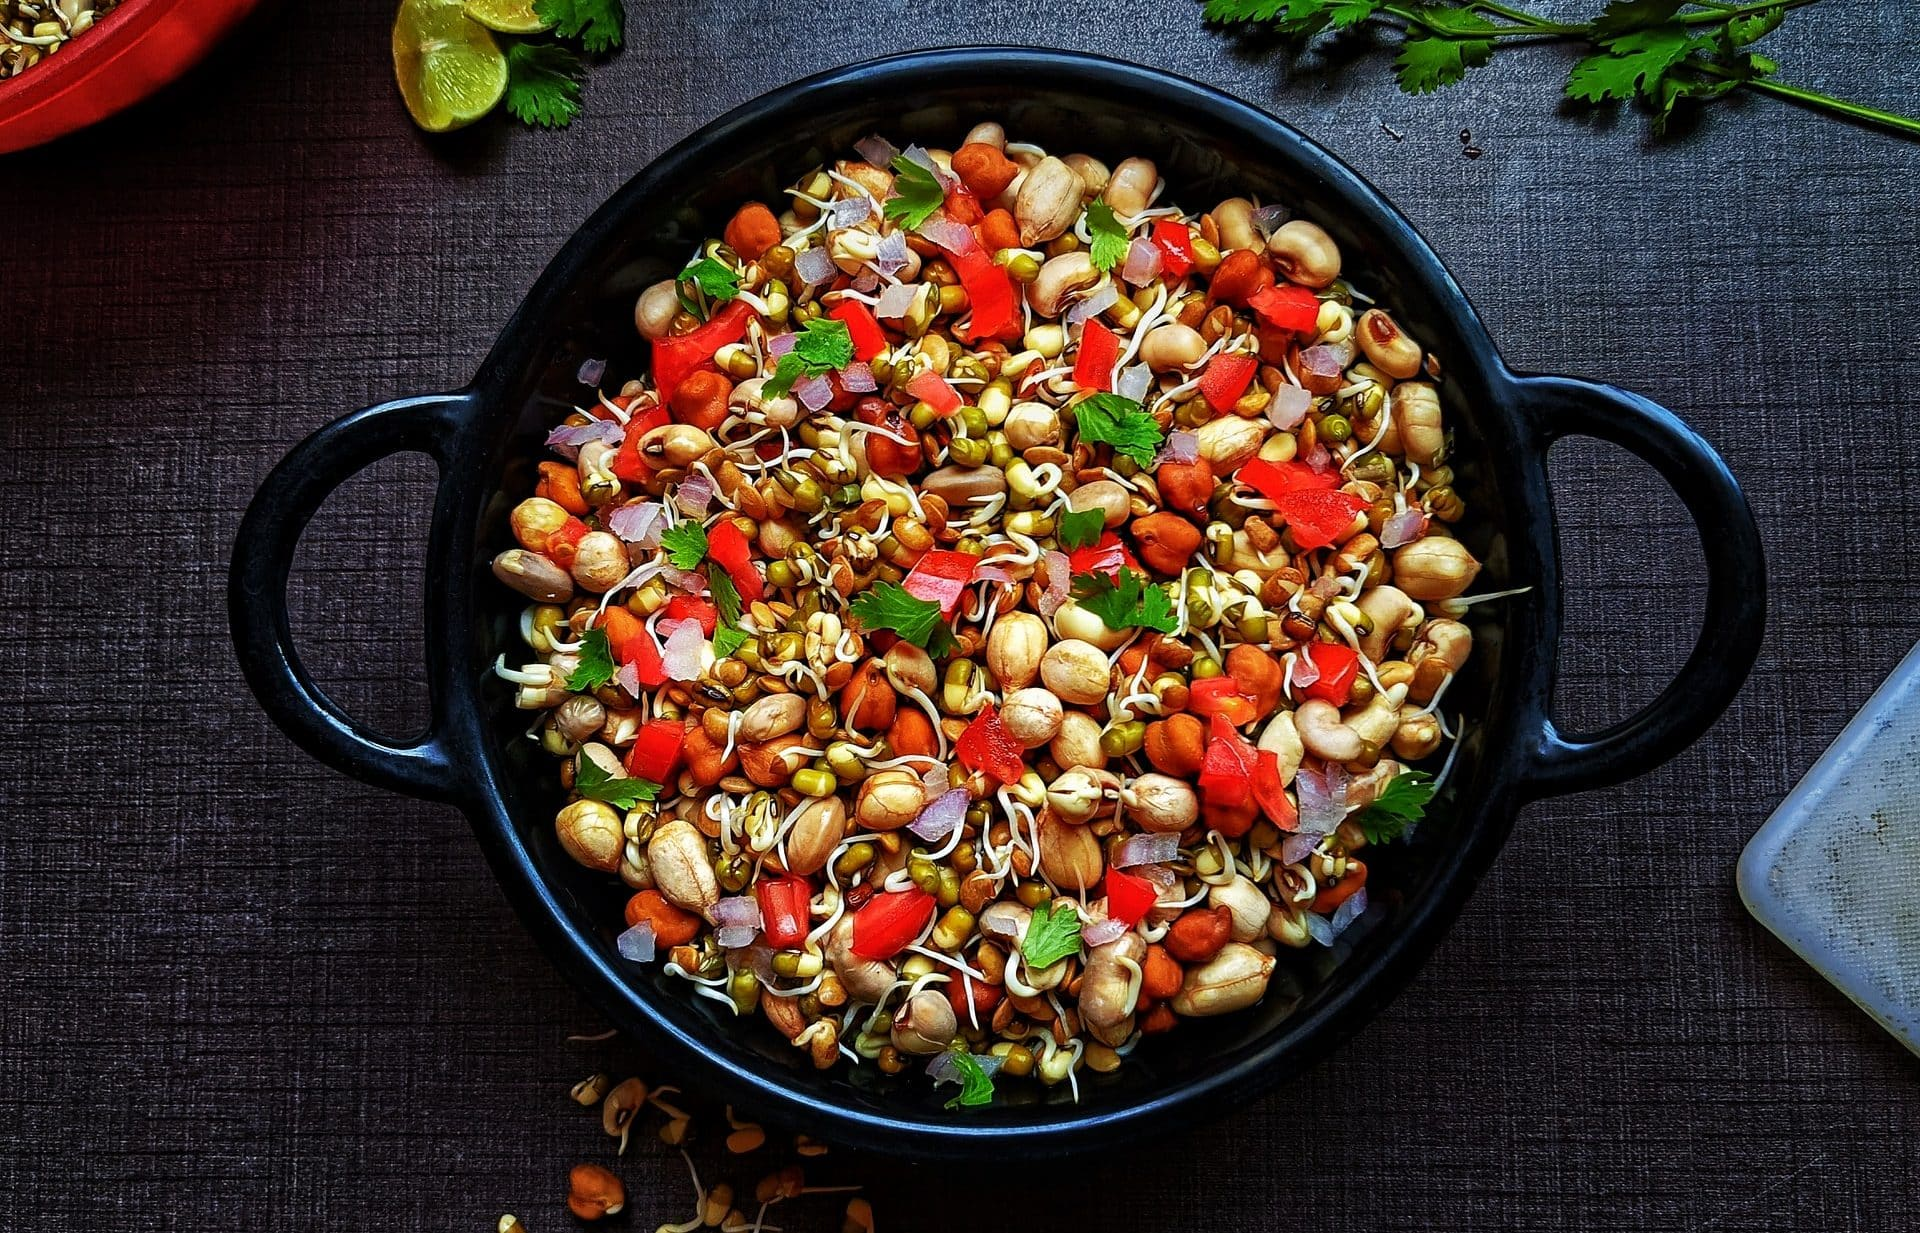 Healthy And Hearty Sprouts Masala - Plattershare - Recipes, Food Stories And Food Enthusiasts